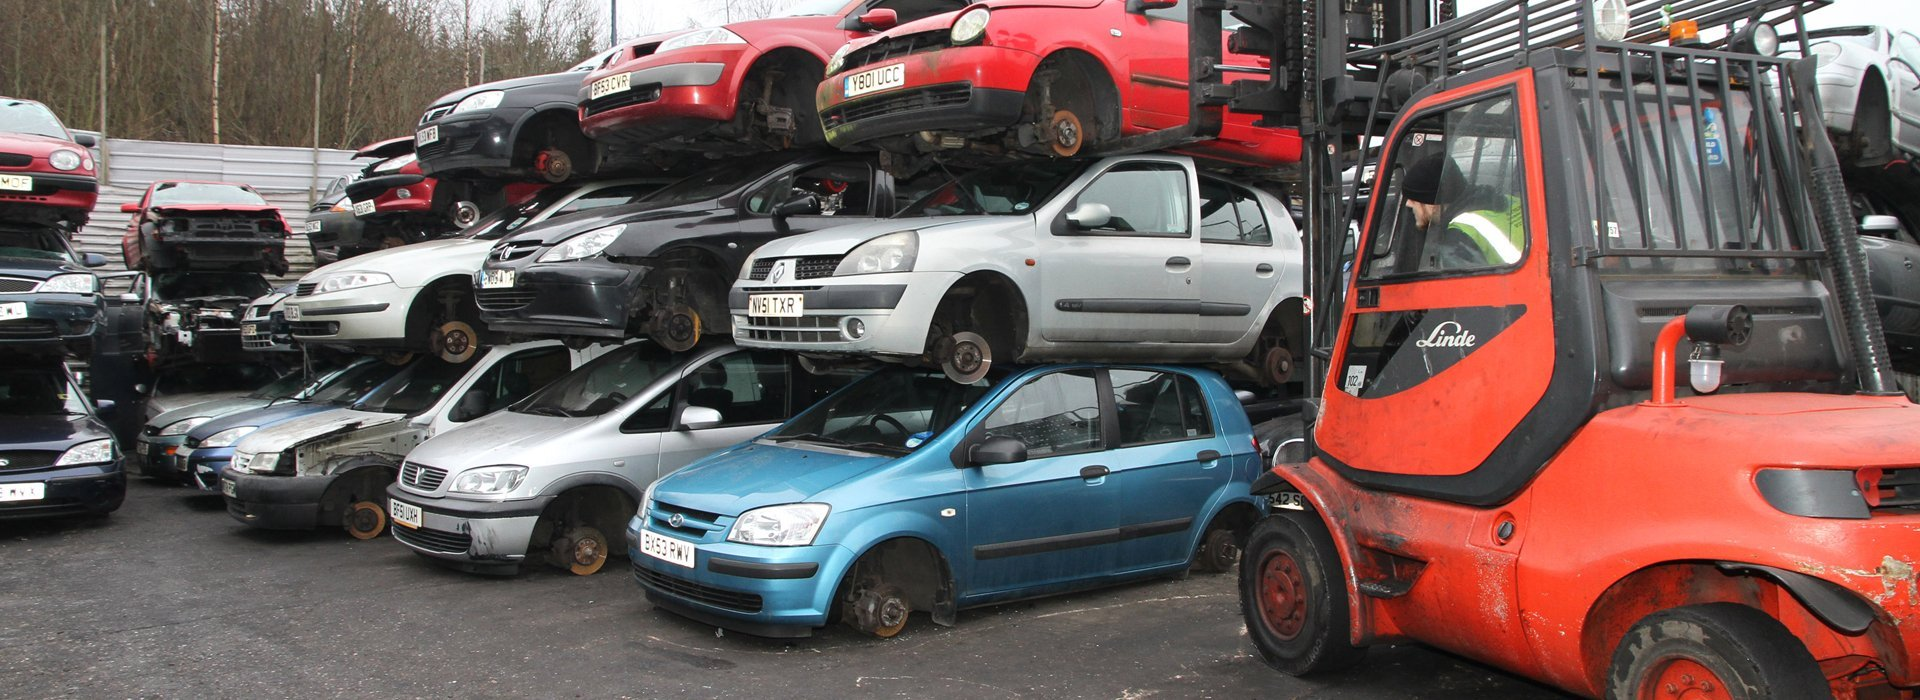 Professional Car Scrapping Company in Birmingham